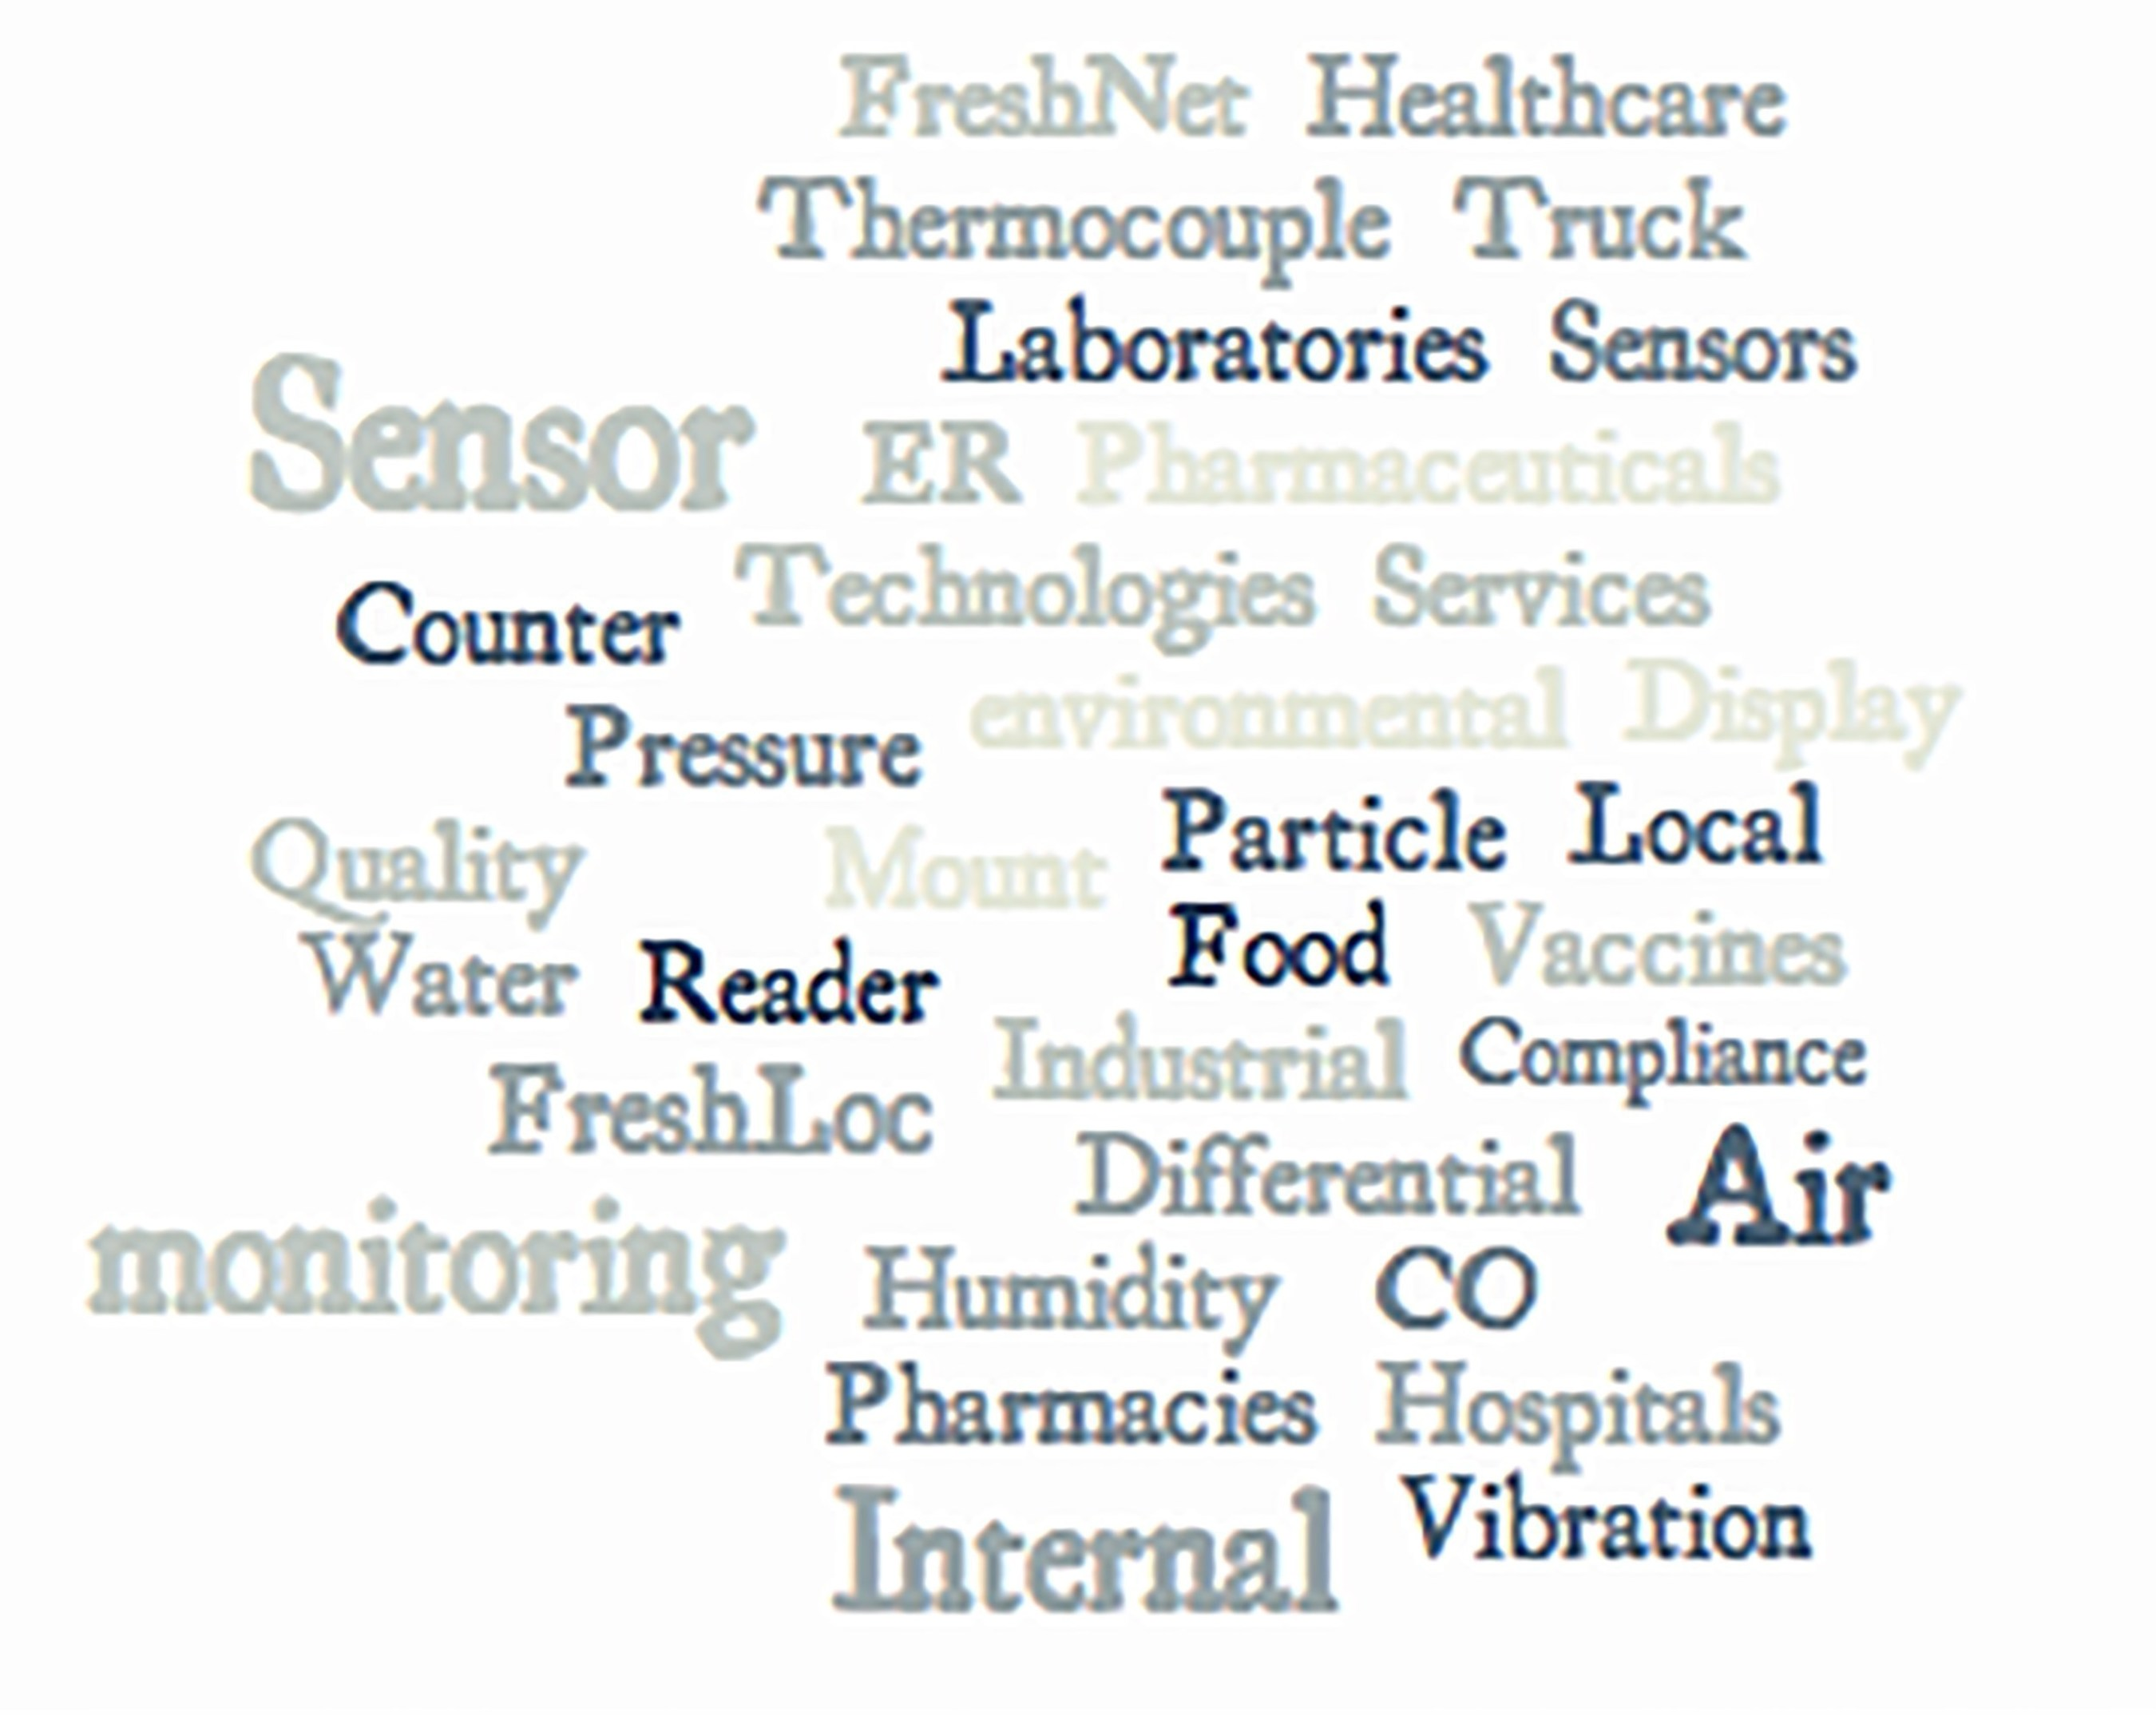 FreshLoc Technologies, Inc. temperature monitoring since 1999 for the healthcare industry including hospitals, pharmacies, laboratories, blood banks, surgery centers, ORs, ERs, clinics, oncology centers, imaging centers, kitchens and more. Helping health care facilities comply with regulations used for auditing by the Joint Commission for the Accreditation of Healthcare Organizations.